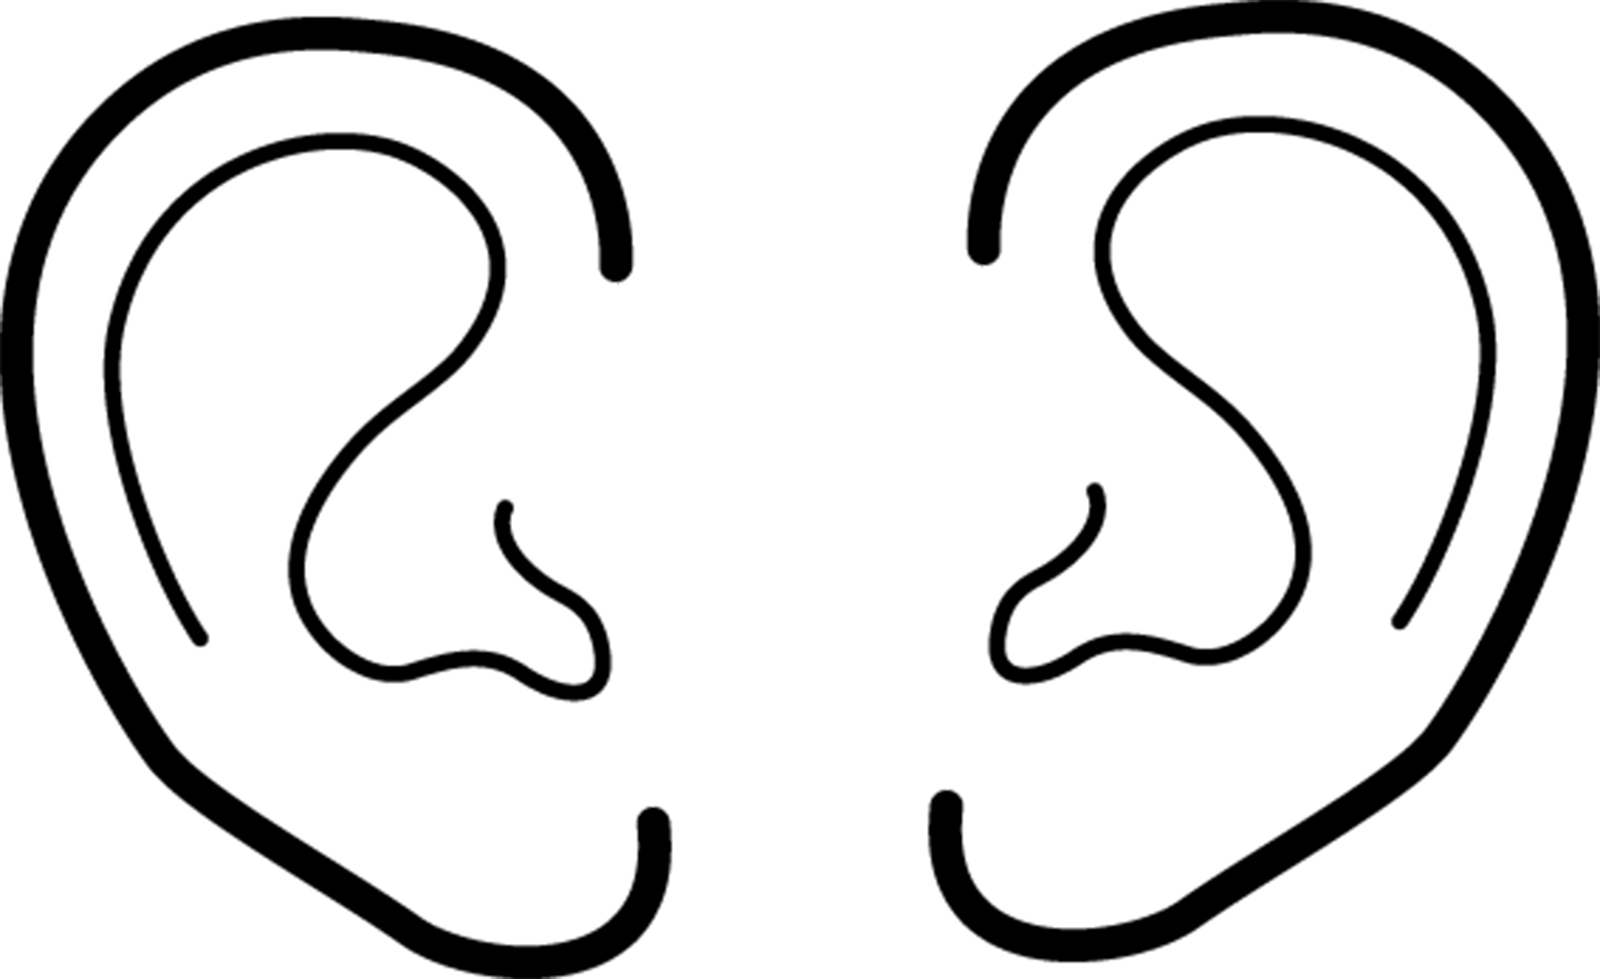 Ear clipart earclipart images listening clip art photo.